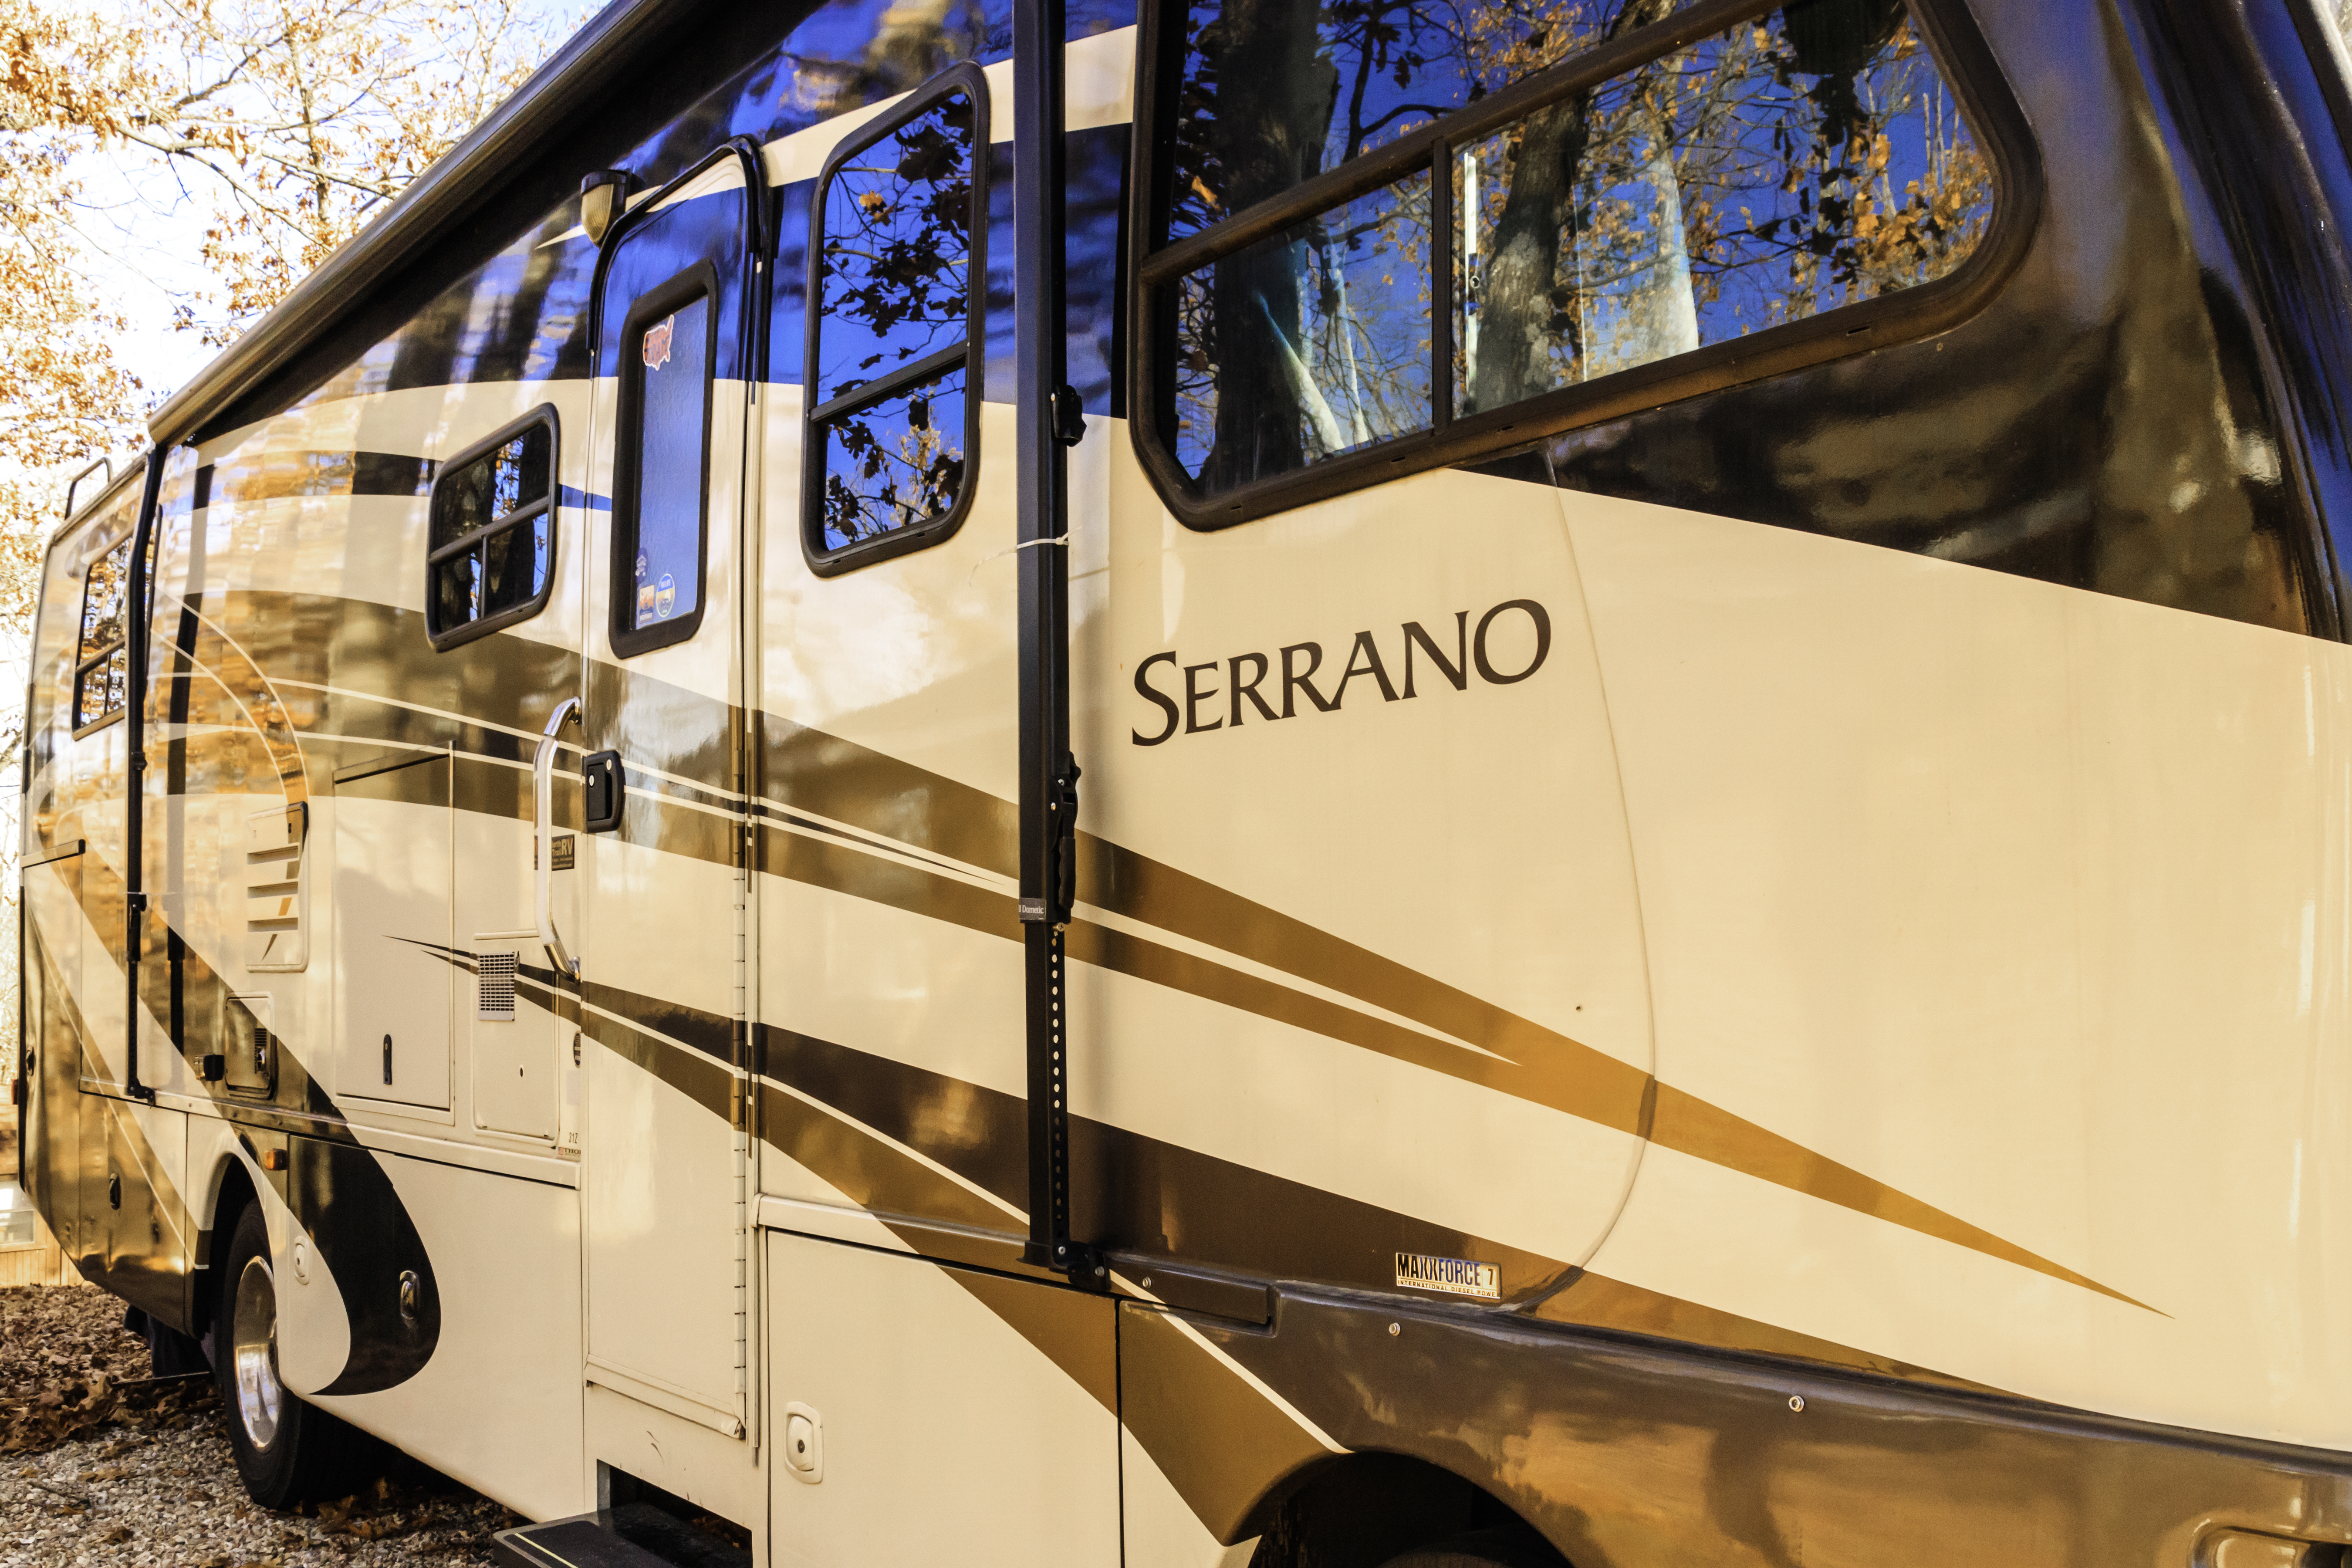 Still sporting a great look after 10 years!. Thor Motor Coach Serrano 2010